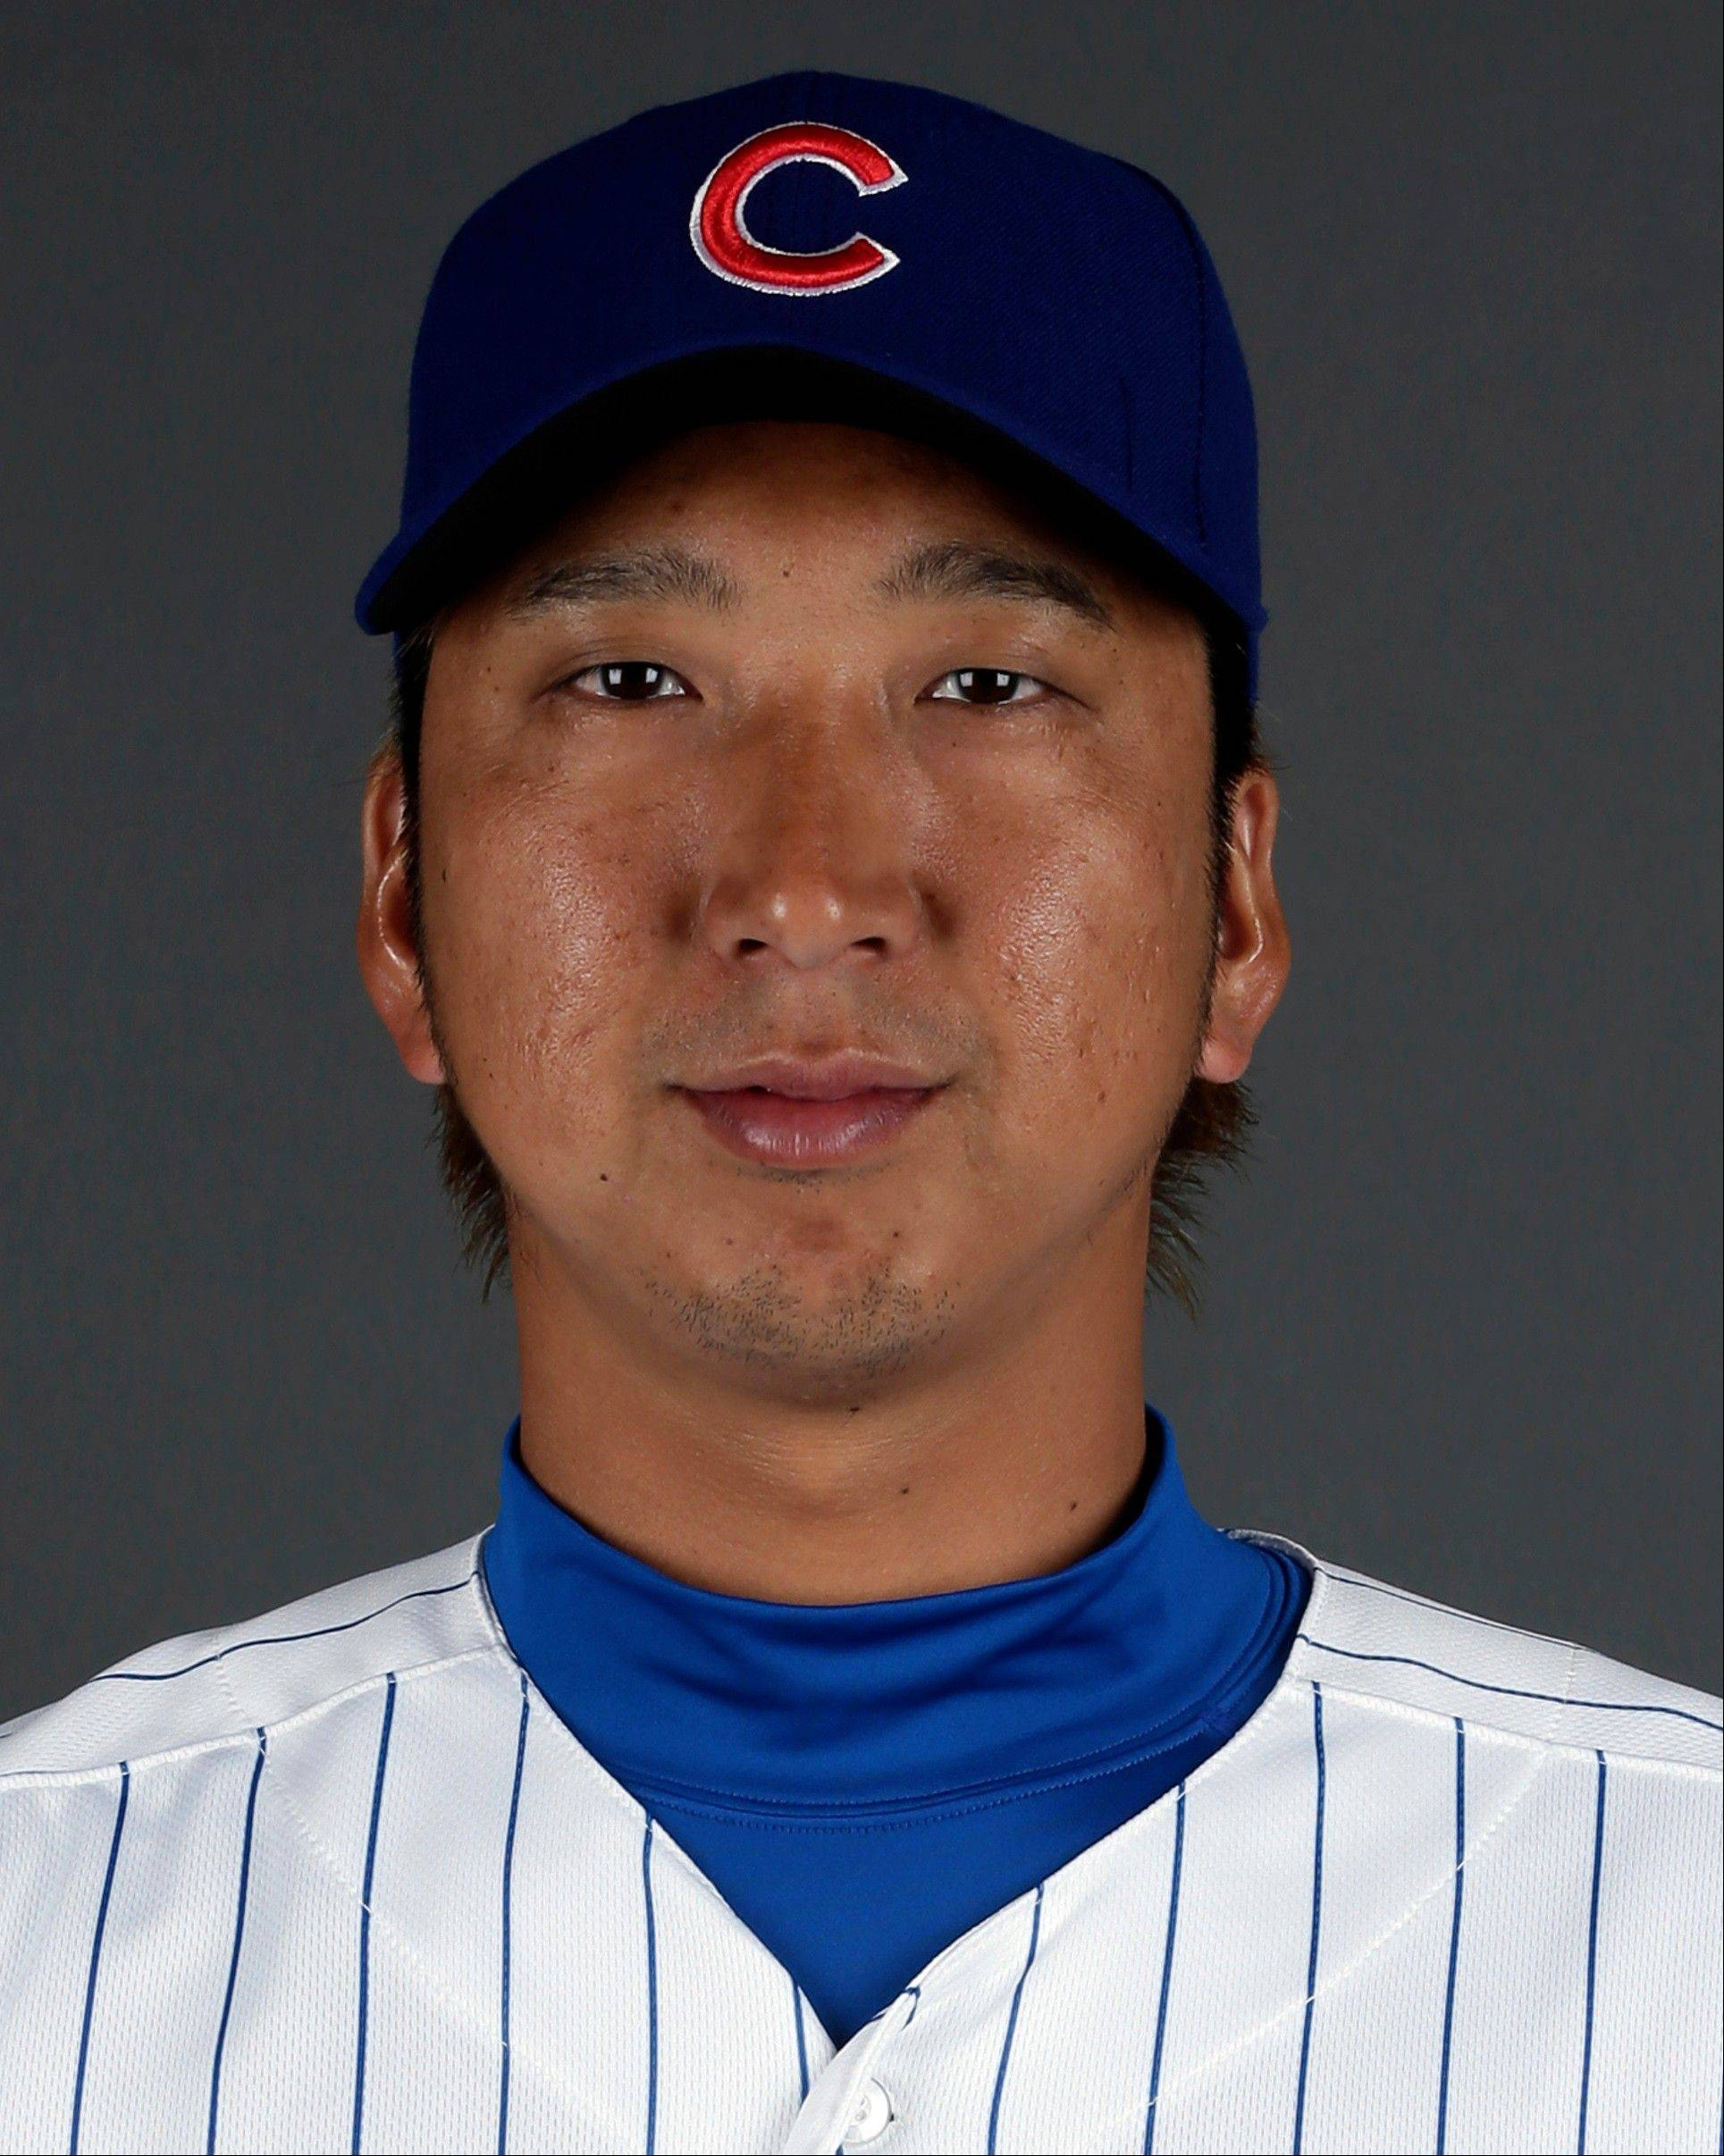 FILE - This is a 2013 file photo showing Kyuji Fujikawa of the Chicago Cubs baseball team. Cubs reliever Fujikawa will have Tommy John surgery to repair a torn ligament in his right elbow and miss the rest of the season. Fujikawa pitched 1 2-3 scoreless innings against Cincinnati on Sunday, May 26, 2013, before leaving with the injury.